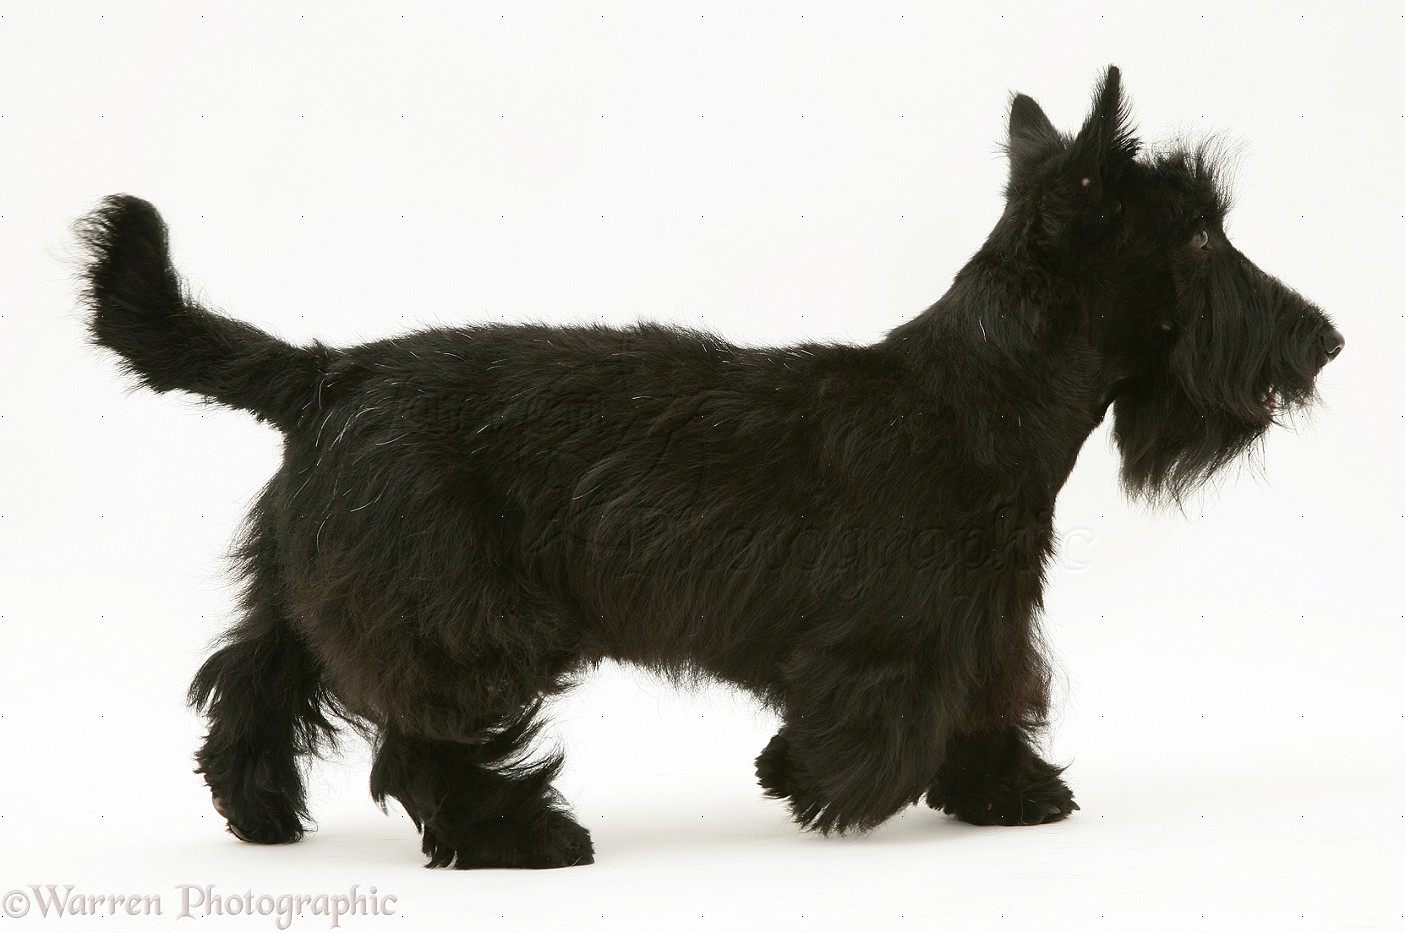 Wp10356 scottish terrier dog angus walking across